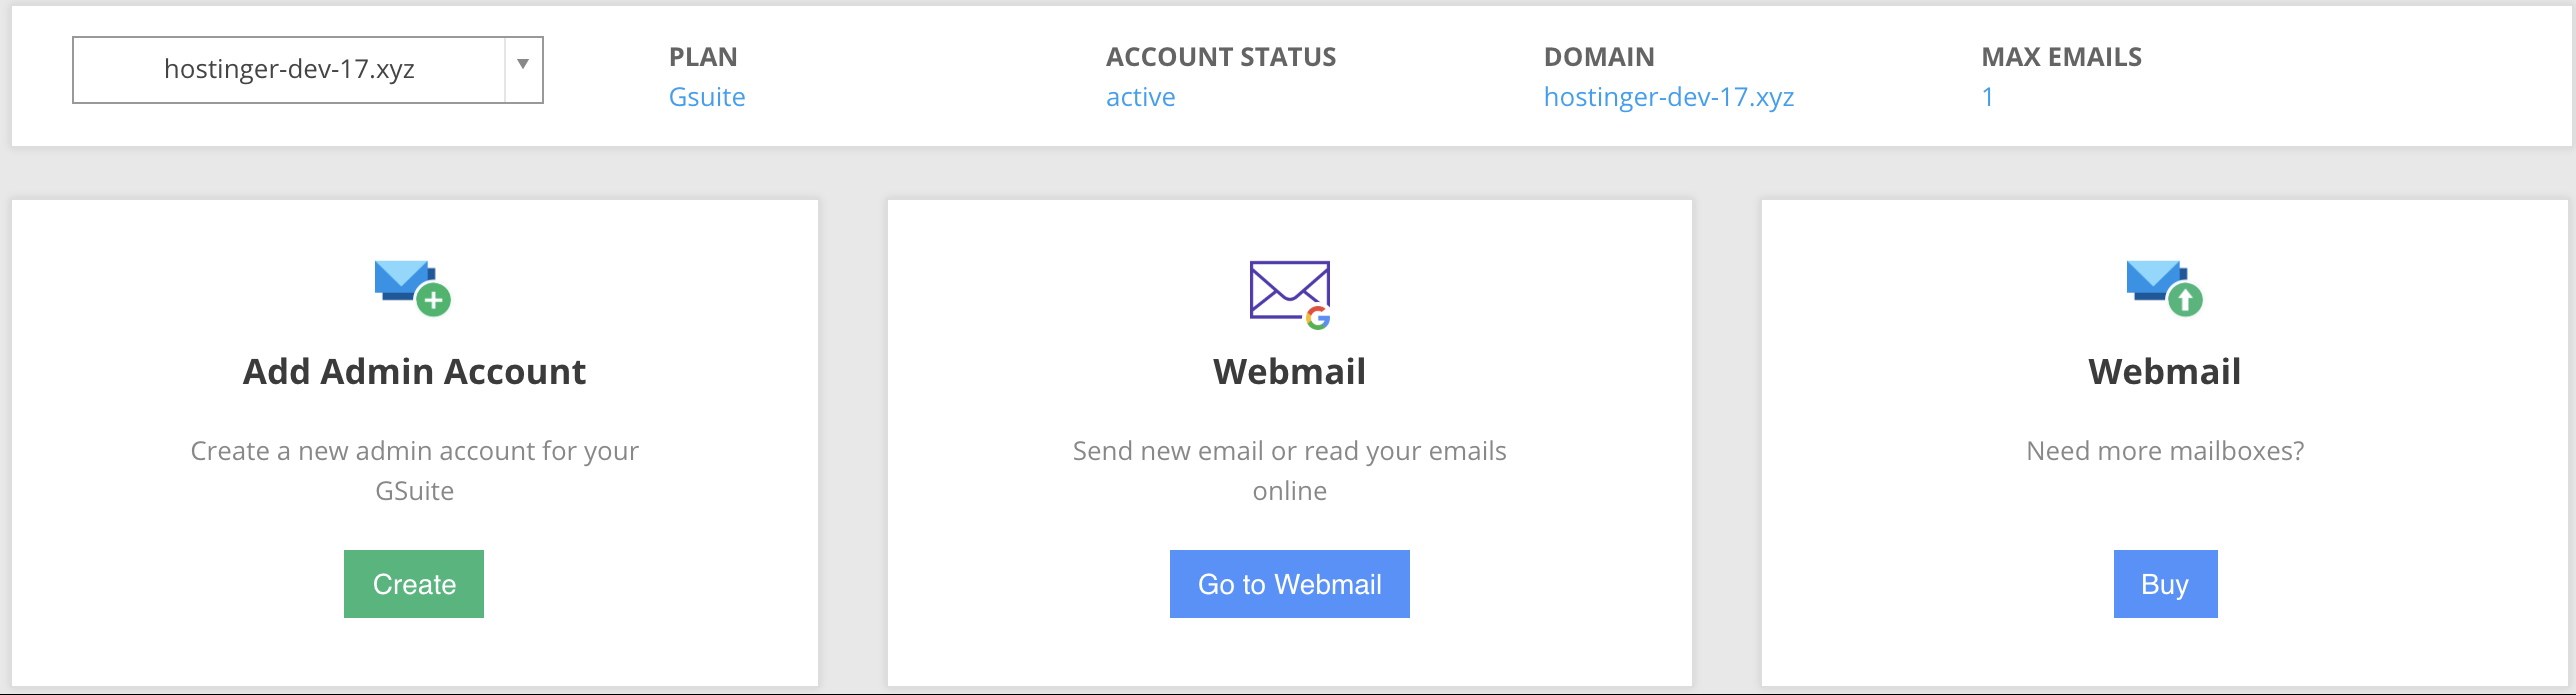 Creating an admin email account using GSuite